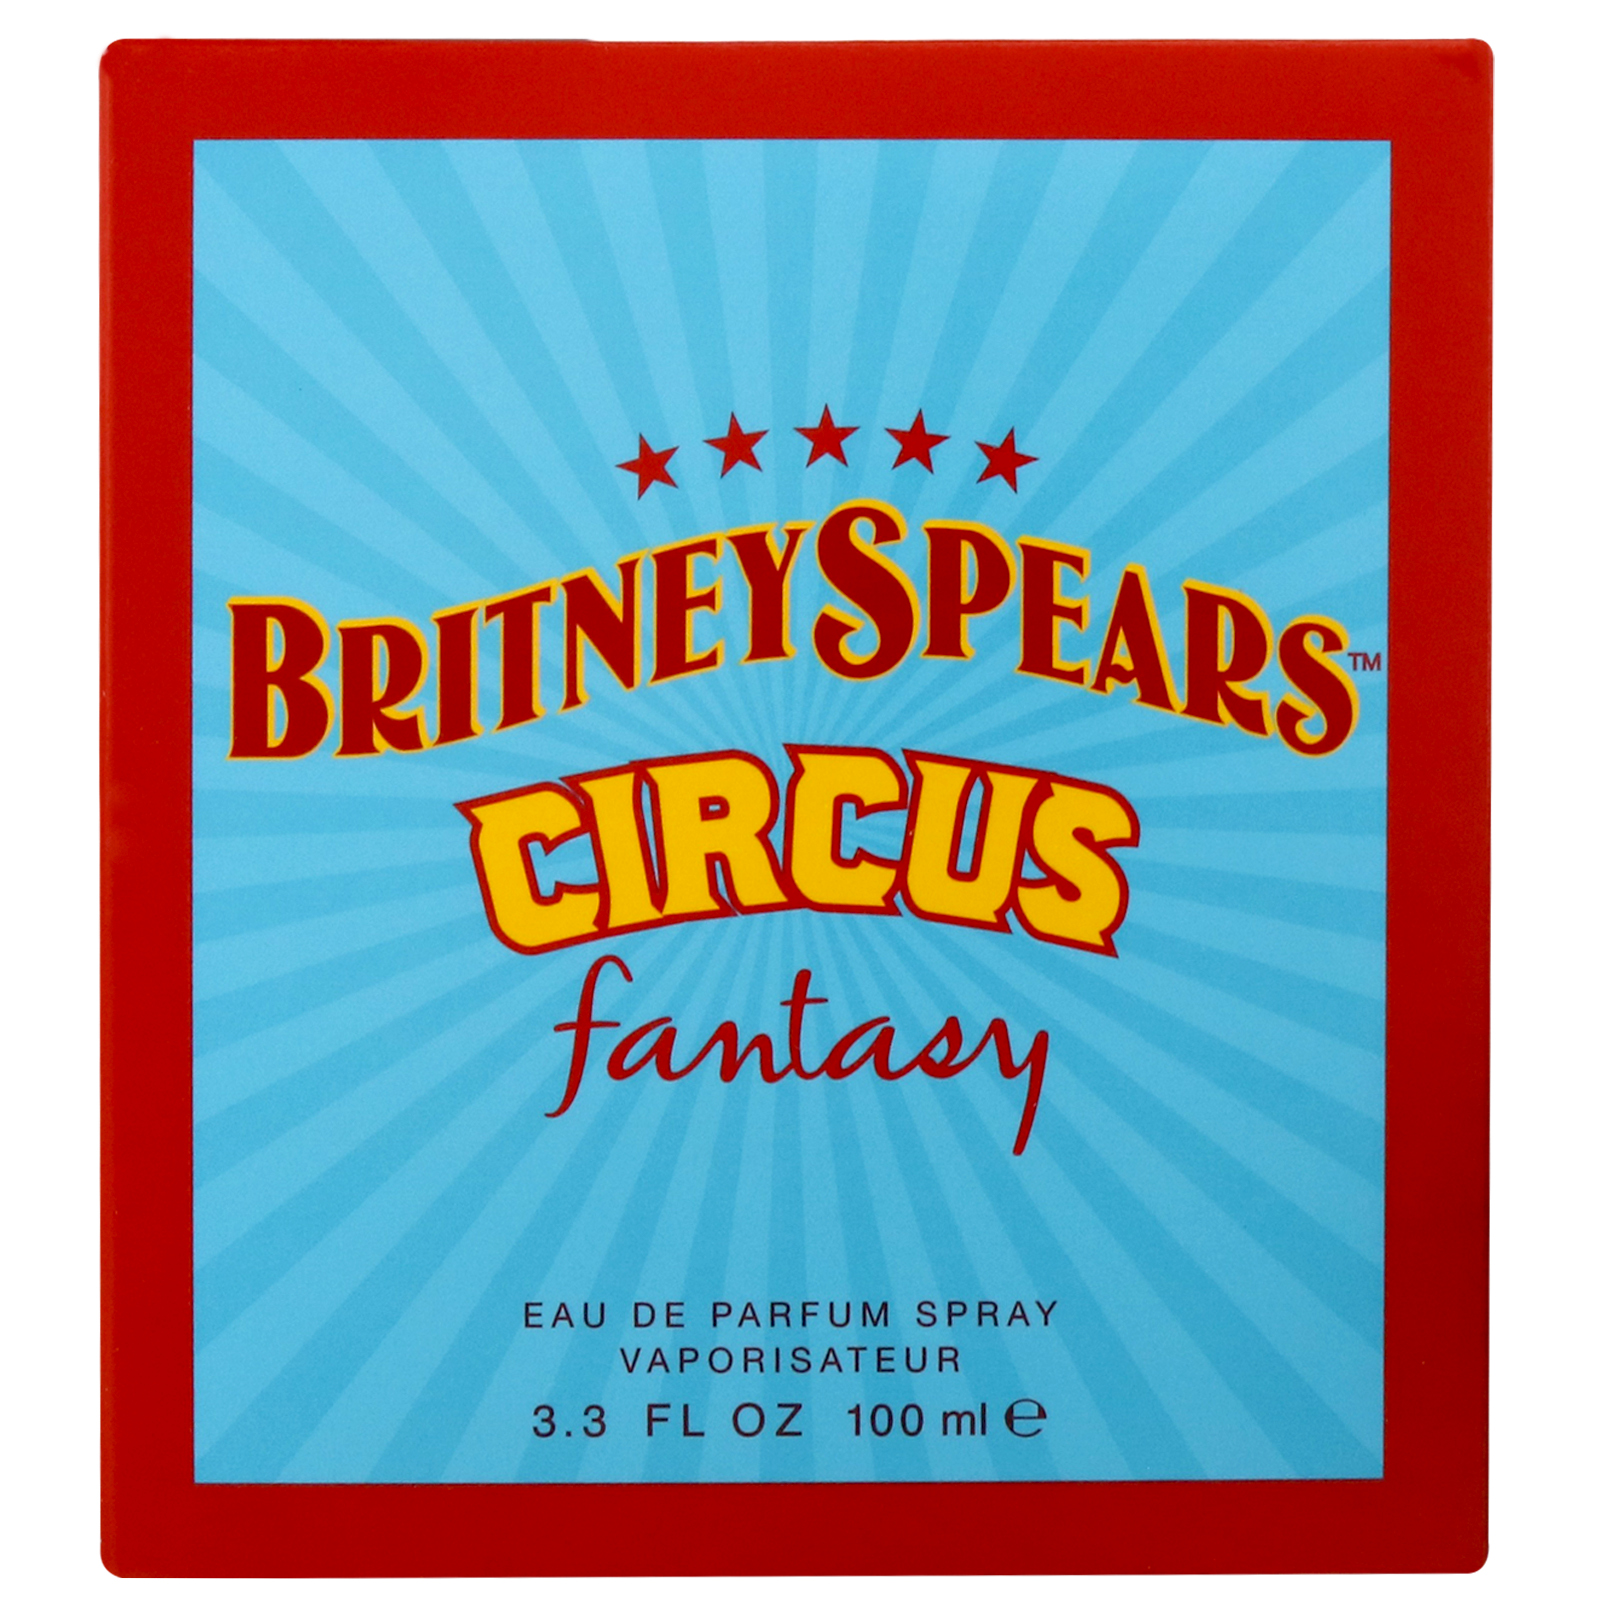 Britney Spears Fantasy Circus Eau de Parfum Spray 100ml Parfym